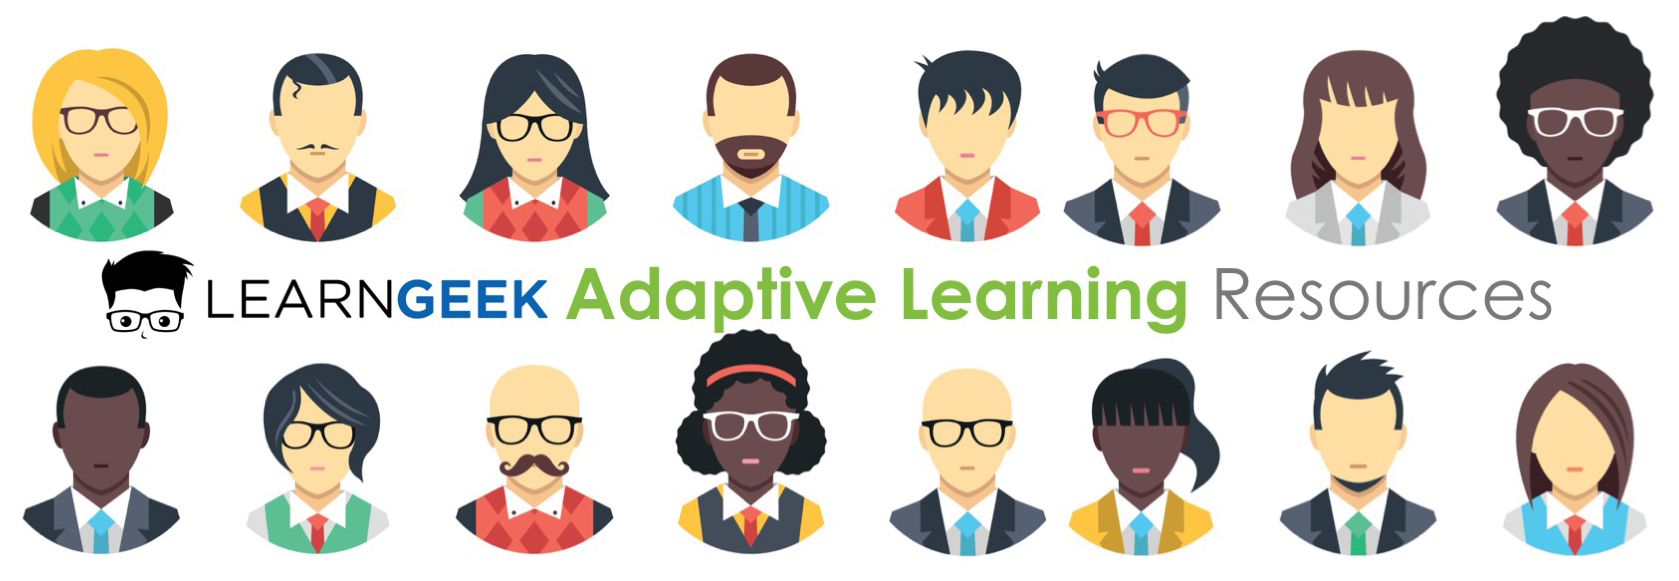 Adaptive Learning Resources title header